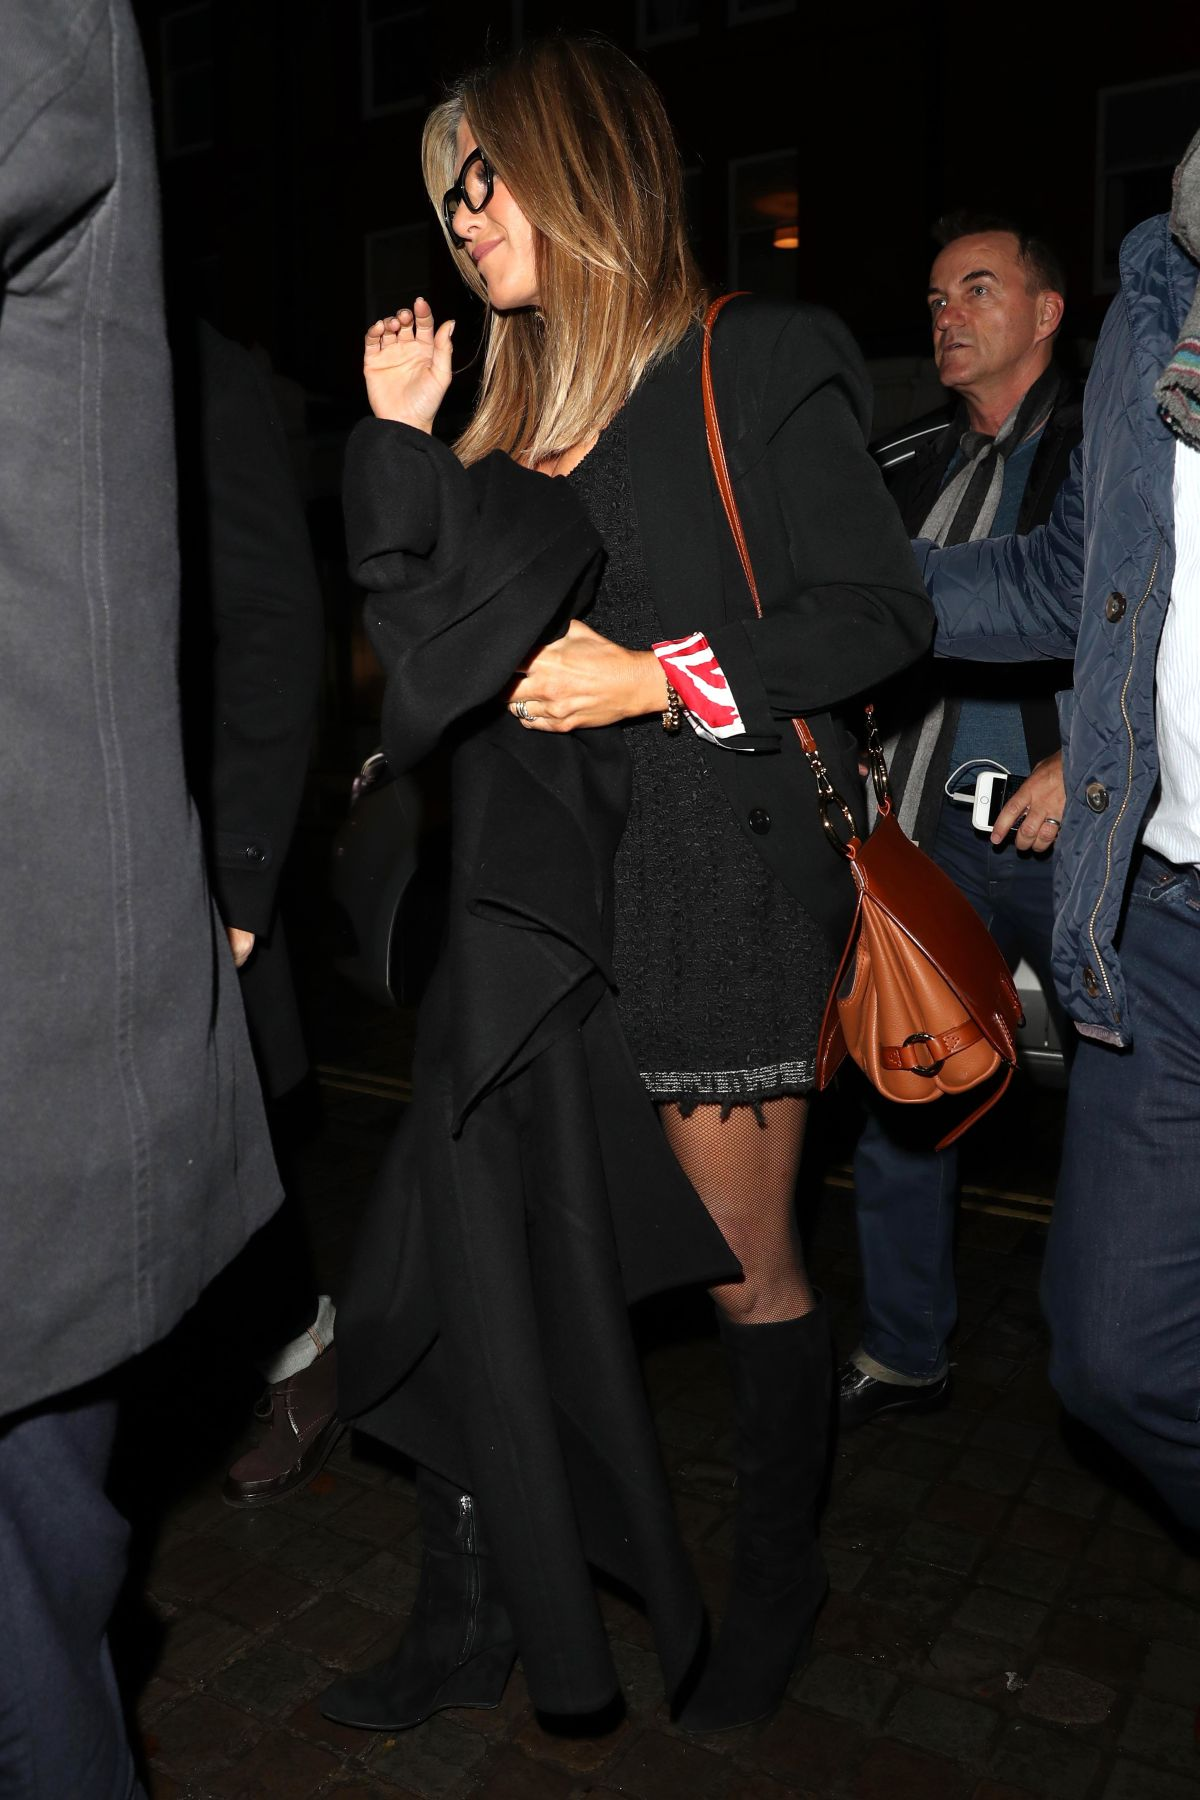 Jennifer Aniston At the Chiltern Firehouse in London   jennifer-aniston-at-the-chiltern-firehouse-in-london_5